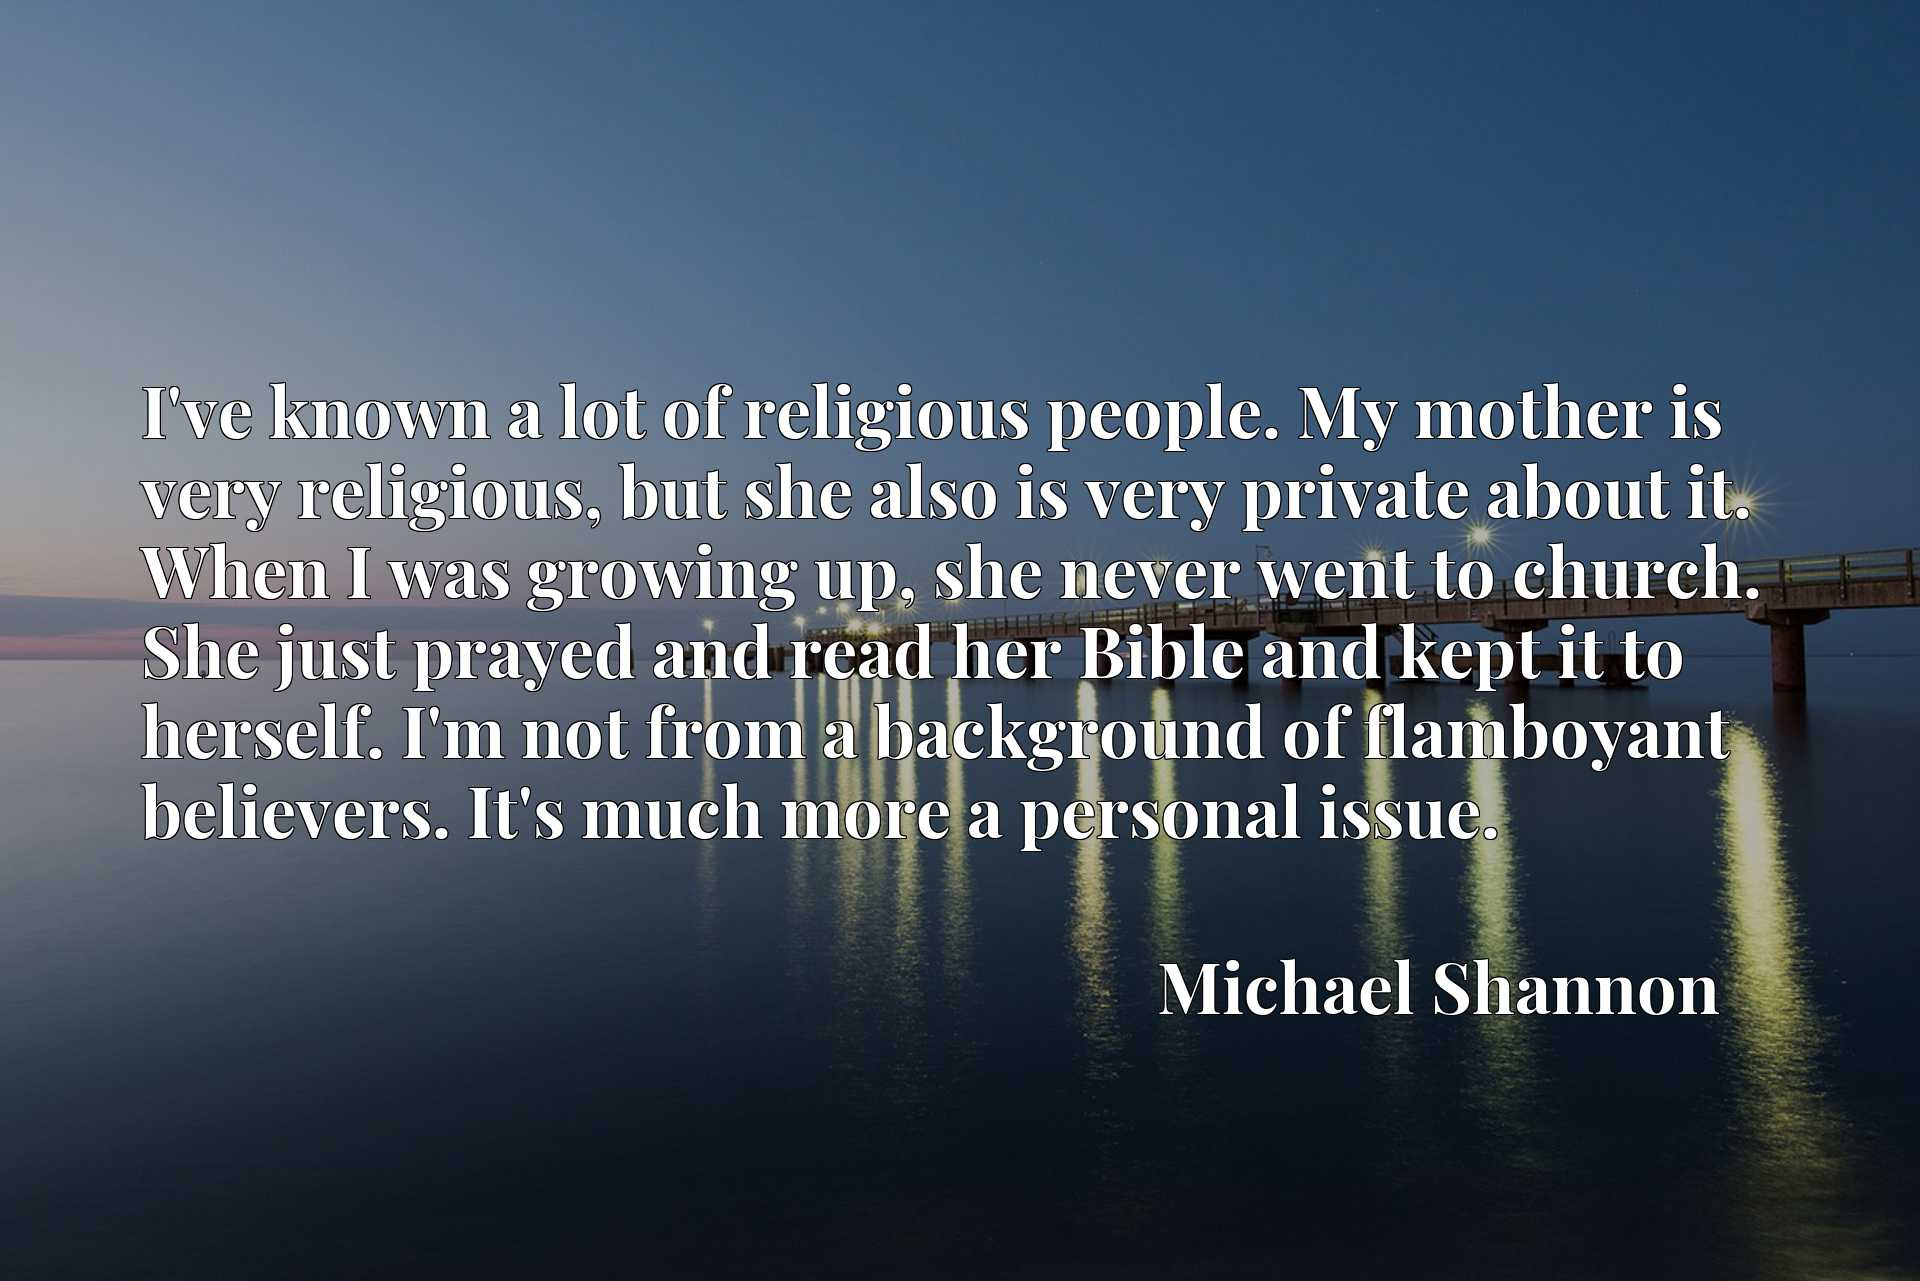 I've known a lot of religious people. My mother is very religious, but she also is very private about it. When I was growing up, she never went to church. She just prayed and read her Bible and kept it to herself. I'm not from a background of flamboyant believers. It's much more a personal issue.